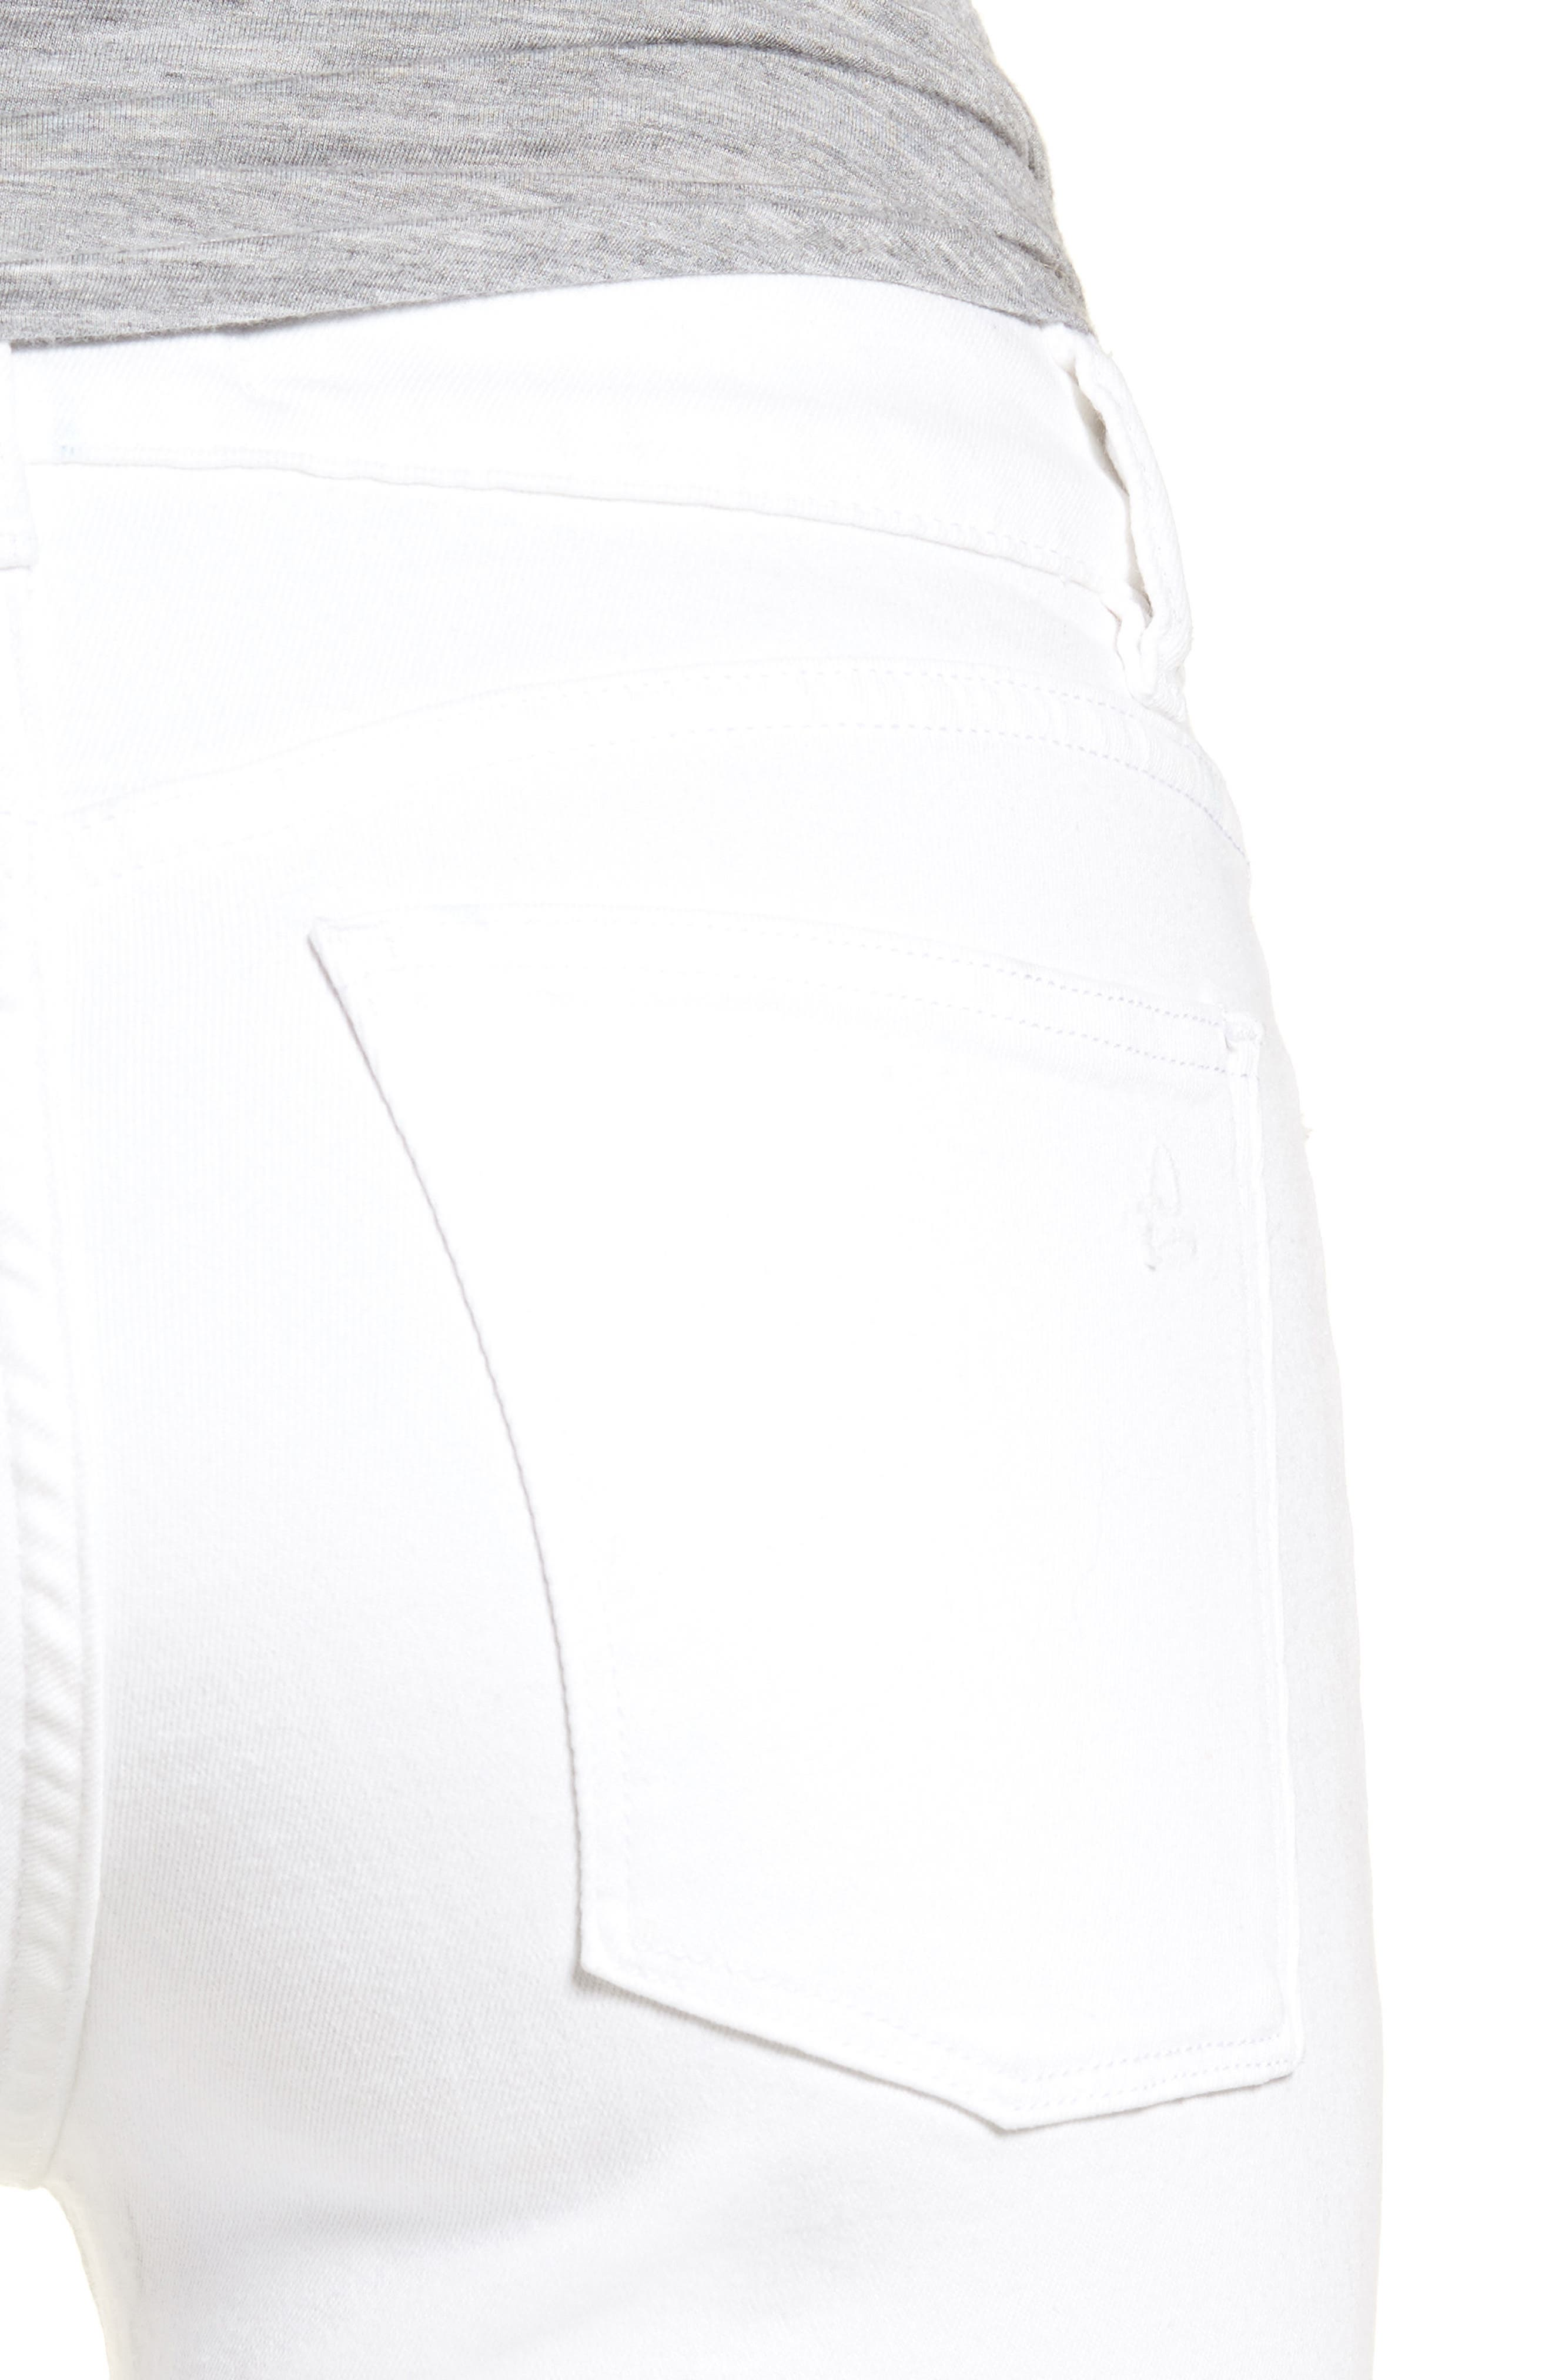 Margaux Instasculpt Ankle Skinny Jeans,                             Alternate thumbnail 4, color,                             Catalina